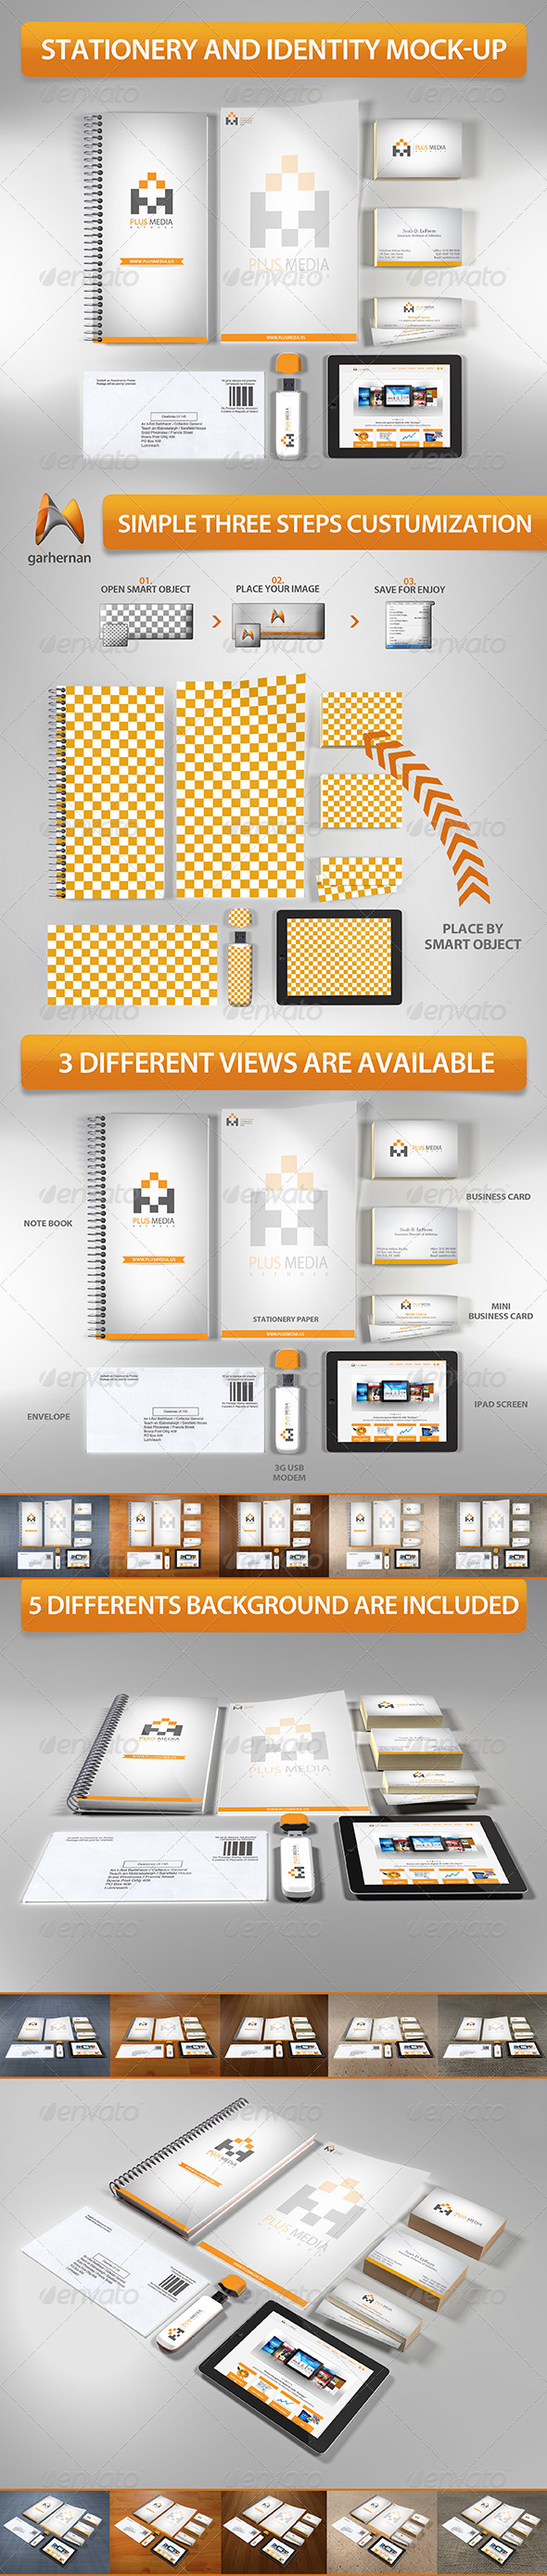 GraphicRiver Stationery and Identity Mock-Up 5532873